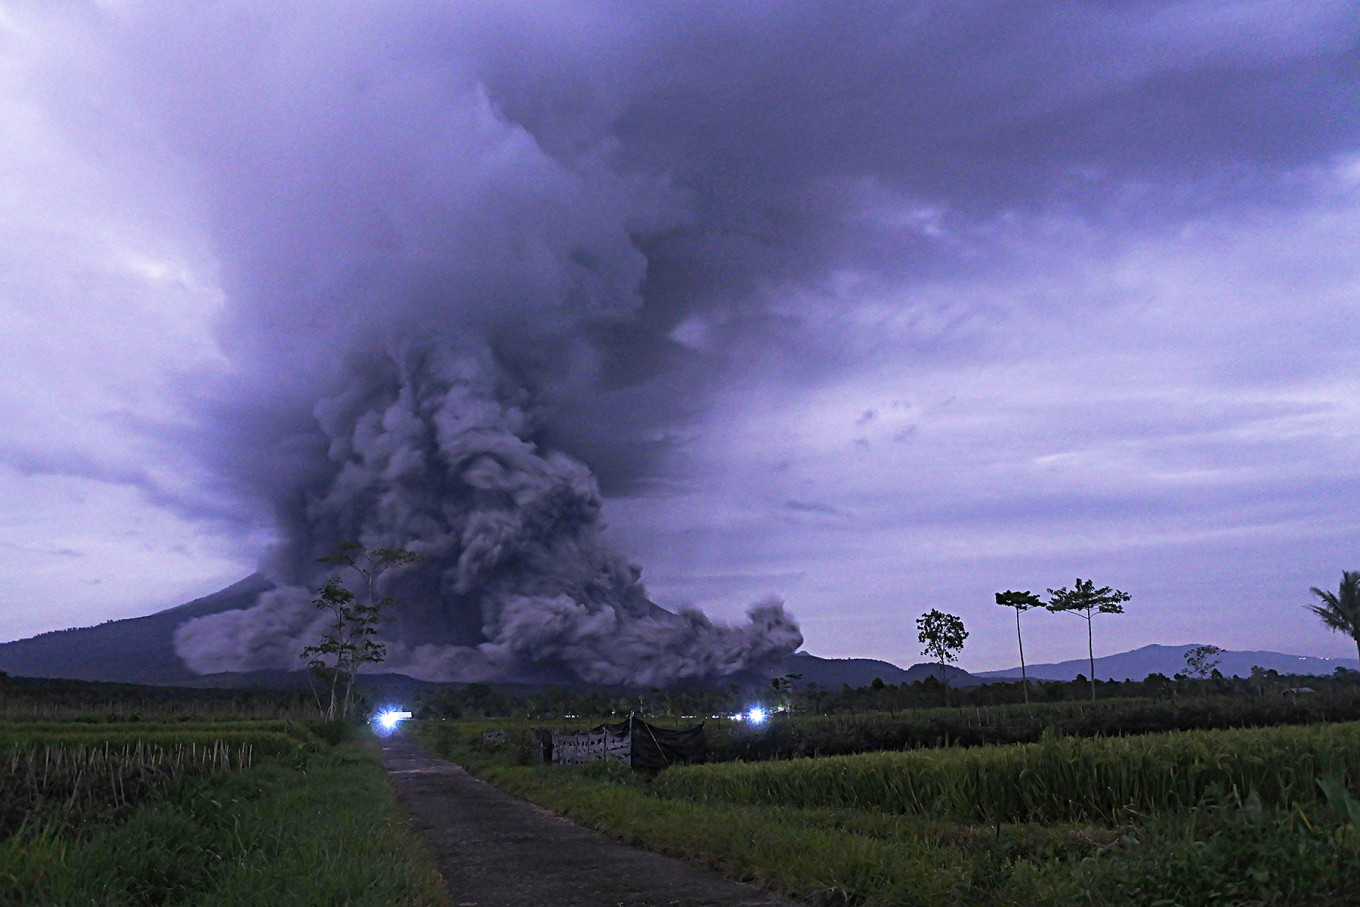 [DISCOURSE] Local governments' readiness key to community resilience around volcanoes